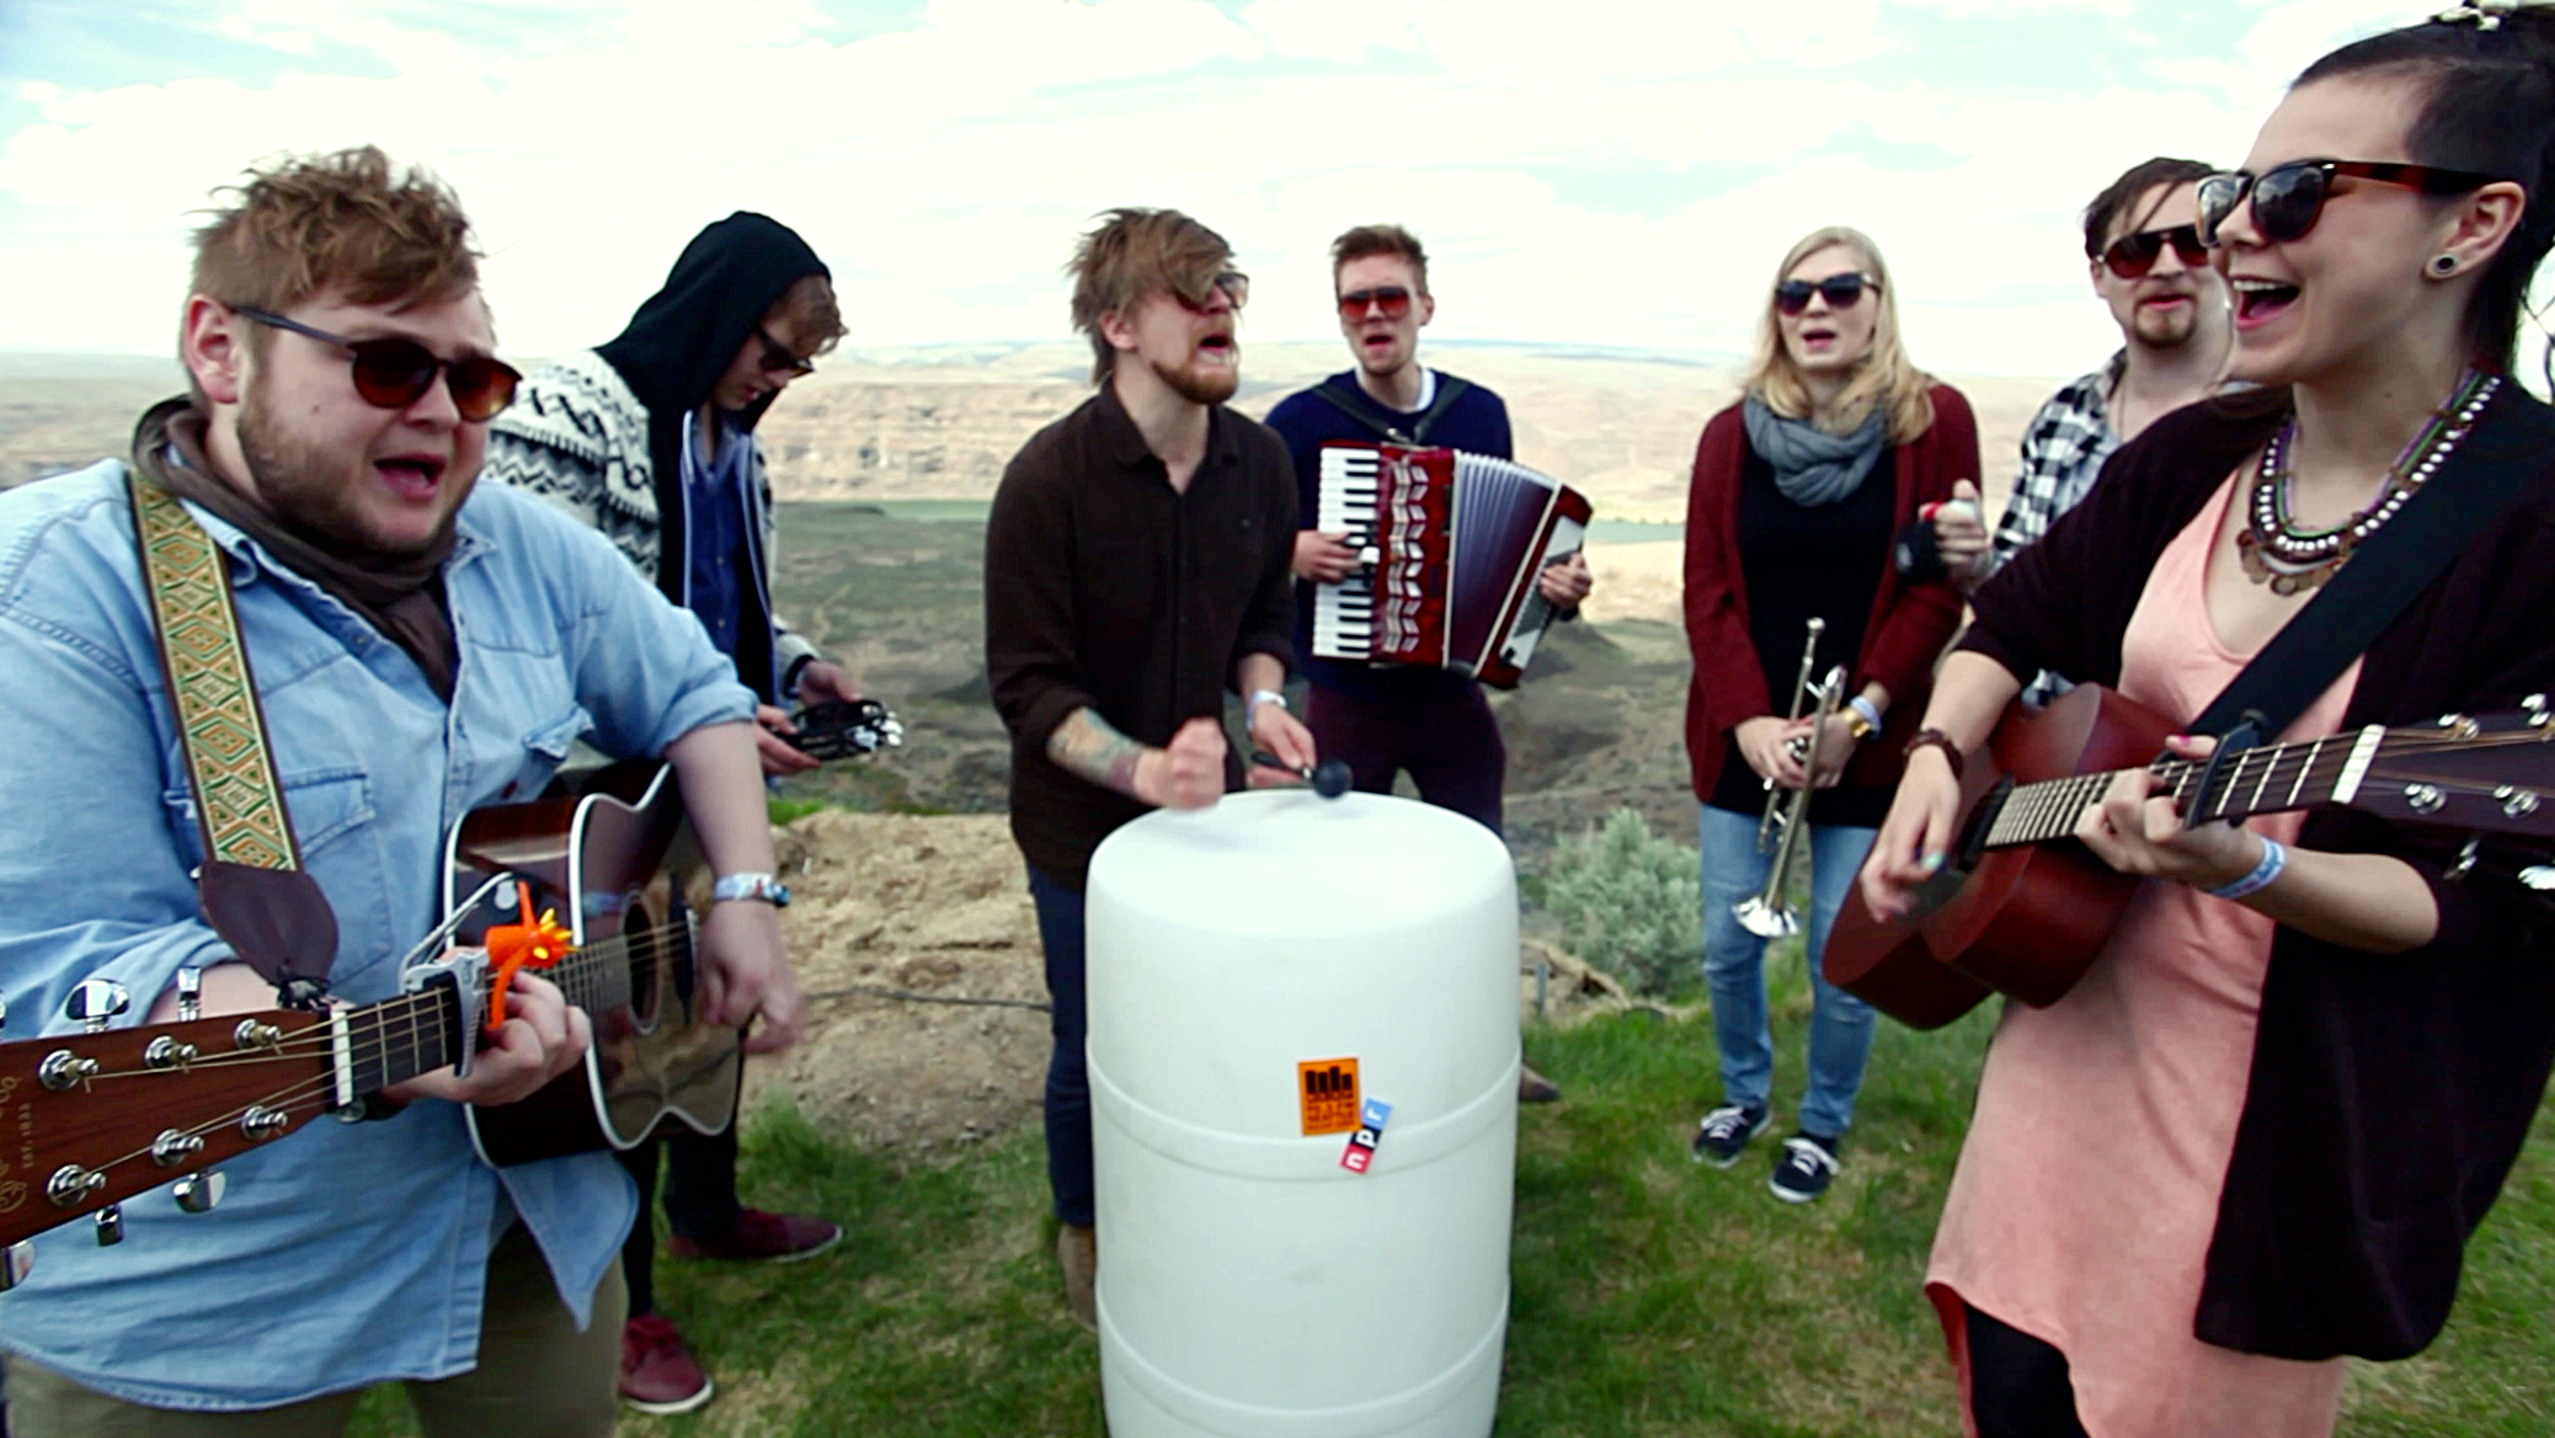 Of Monsters And Men perform a Field Recording backstage at Sasquatch! Music Festival on Friday, May 25, 2012.